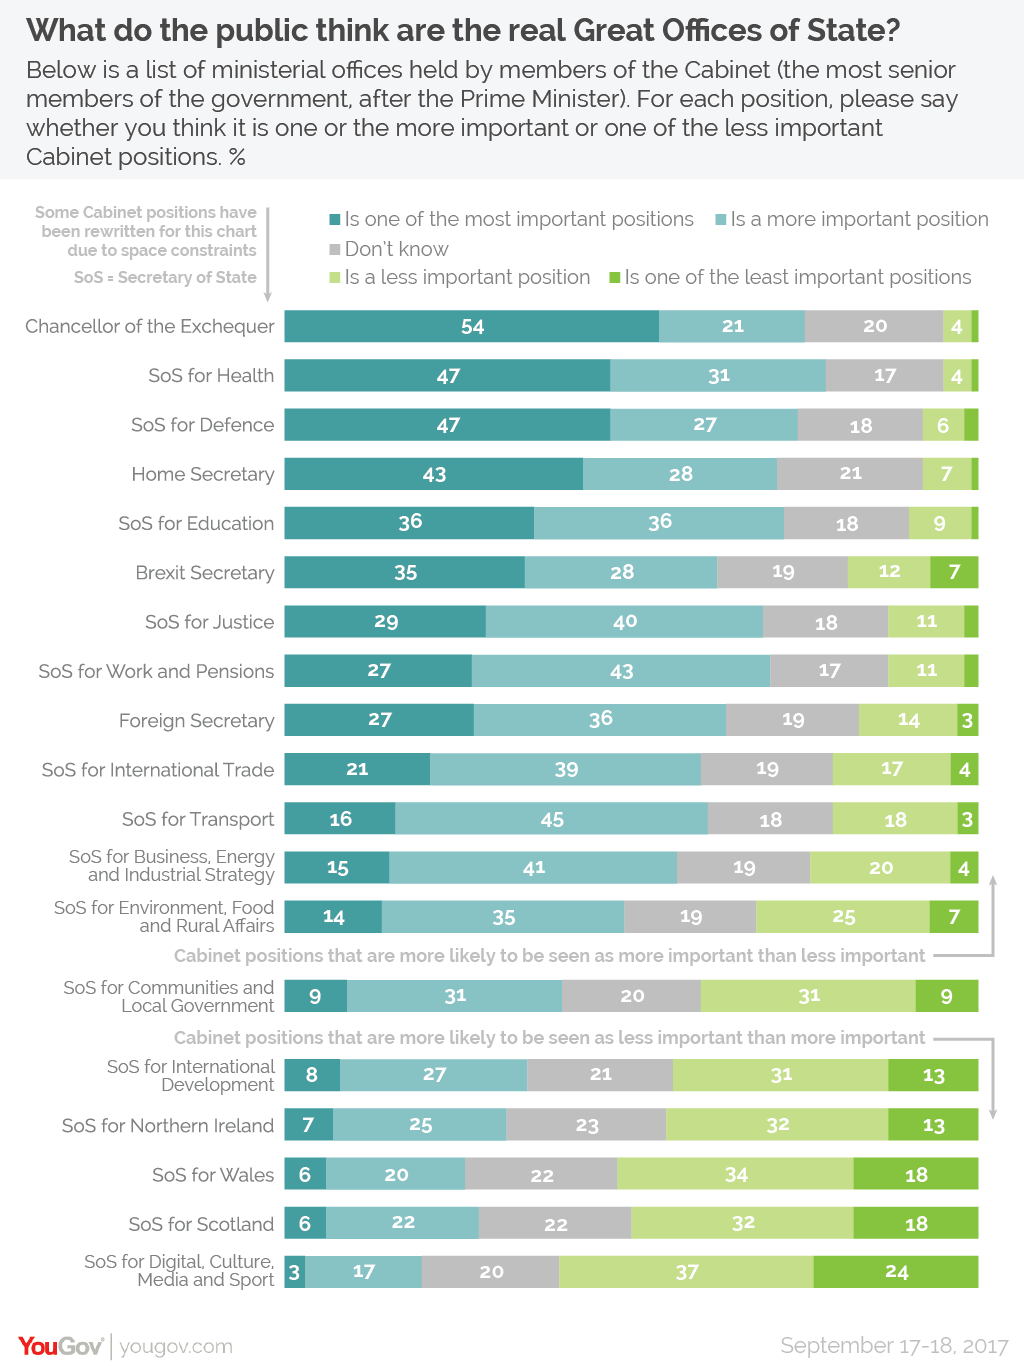 YouGov | What do the public think are the real Great Offices of State?